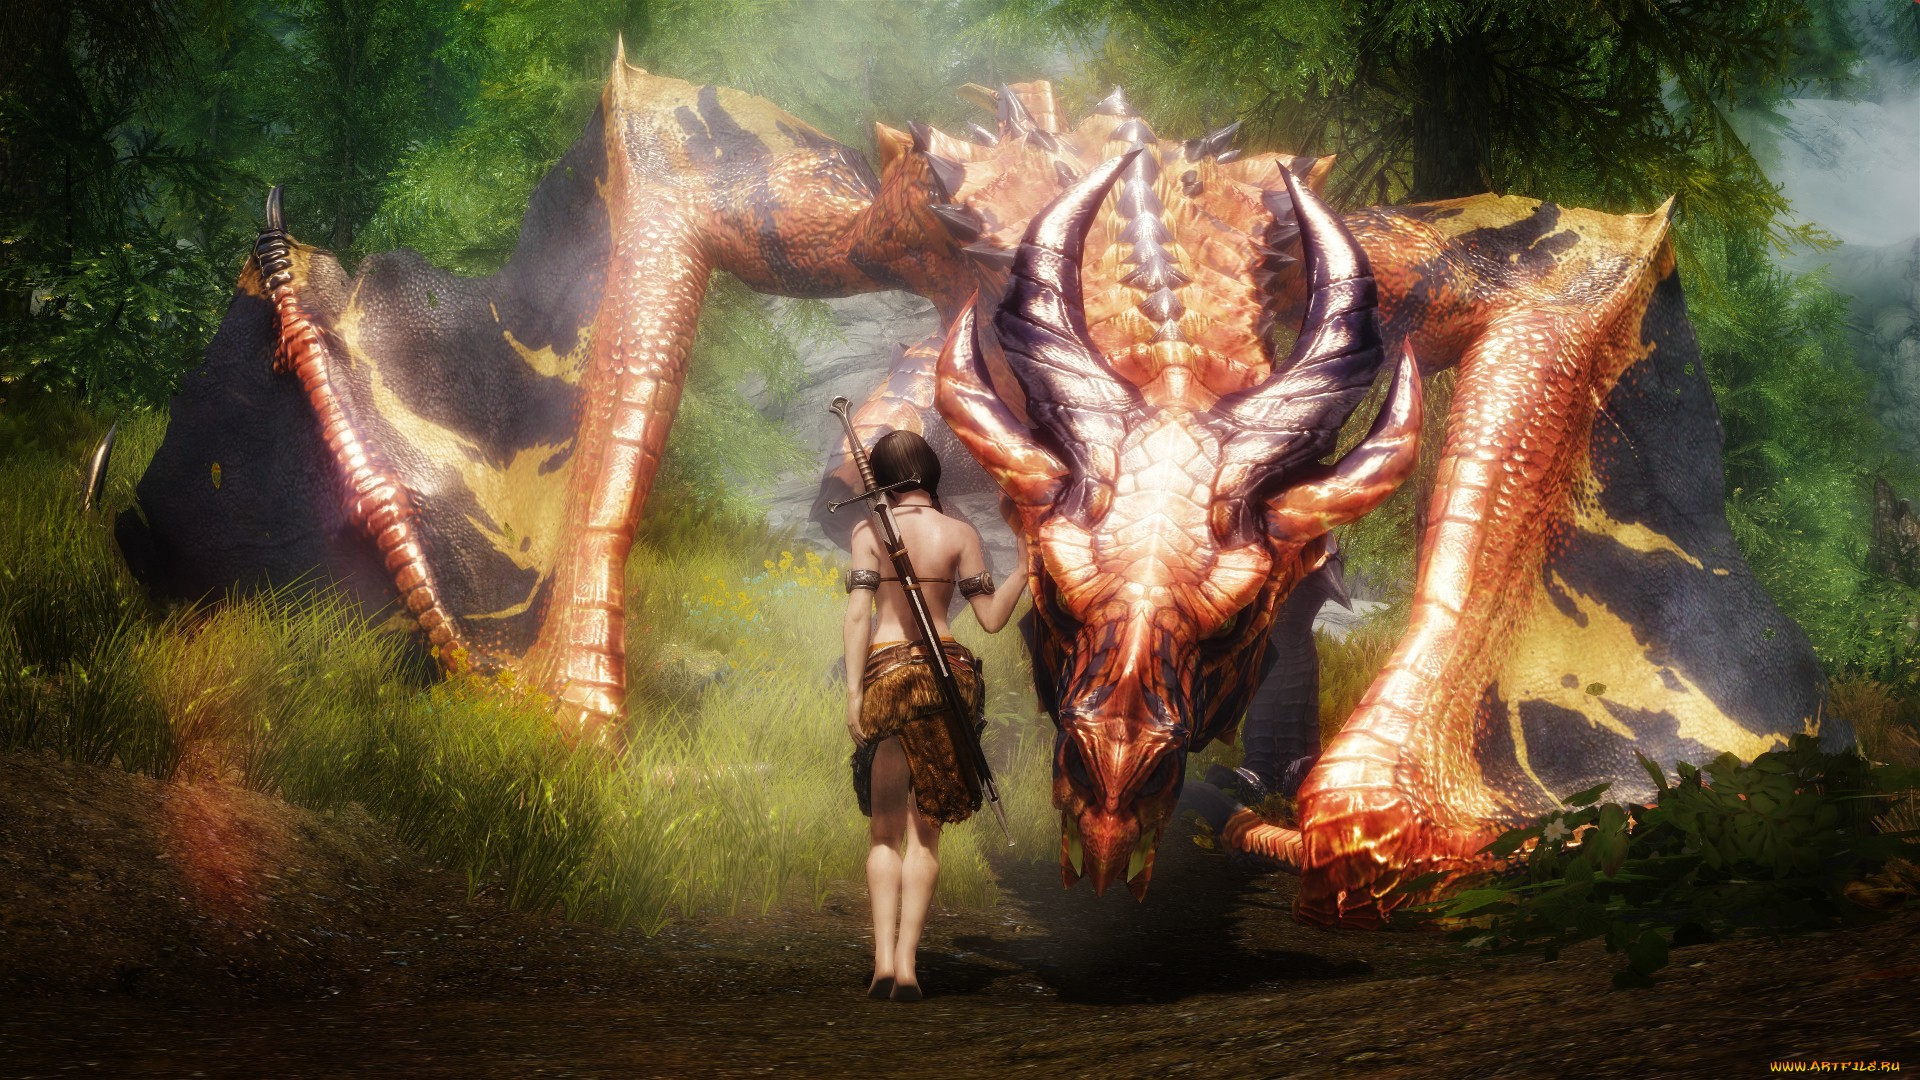 Smart Girl Wallpaper Free Download New Skyrim Game Awesome Hd Wallpapers All Hd Wallpapers